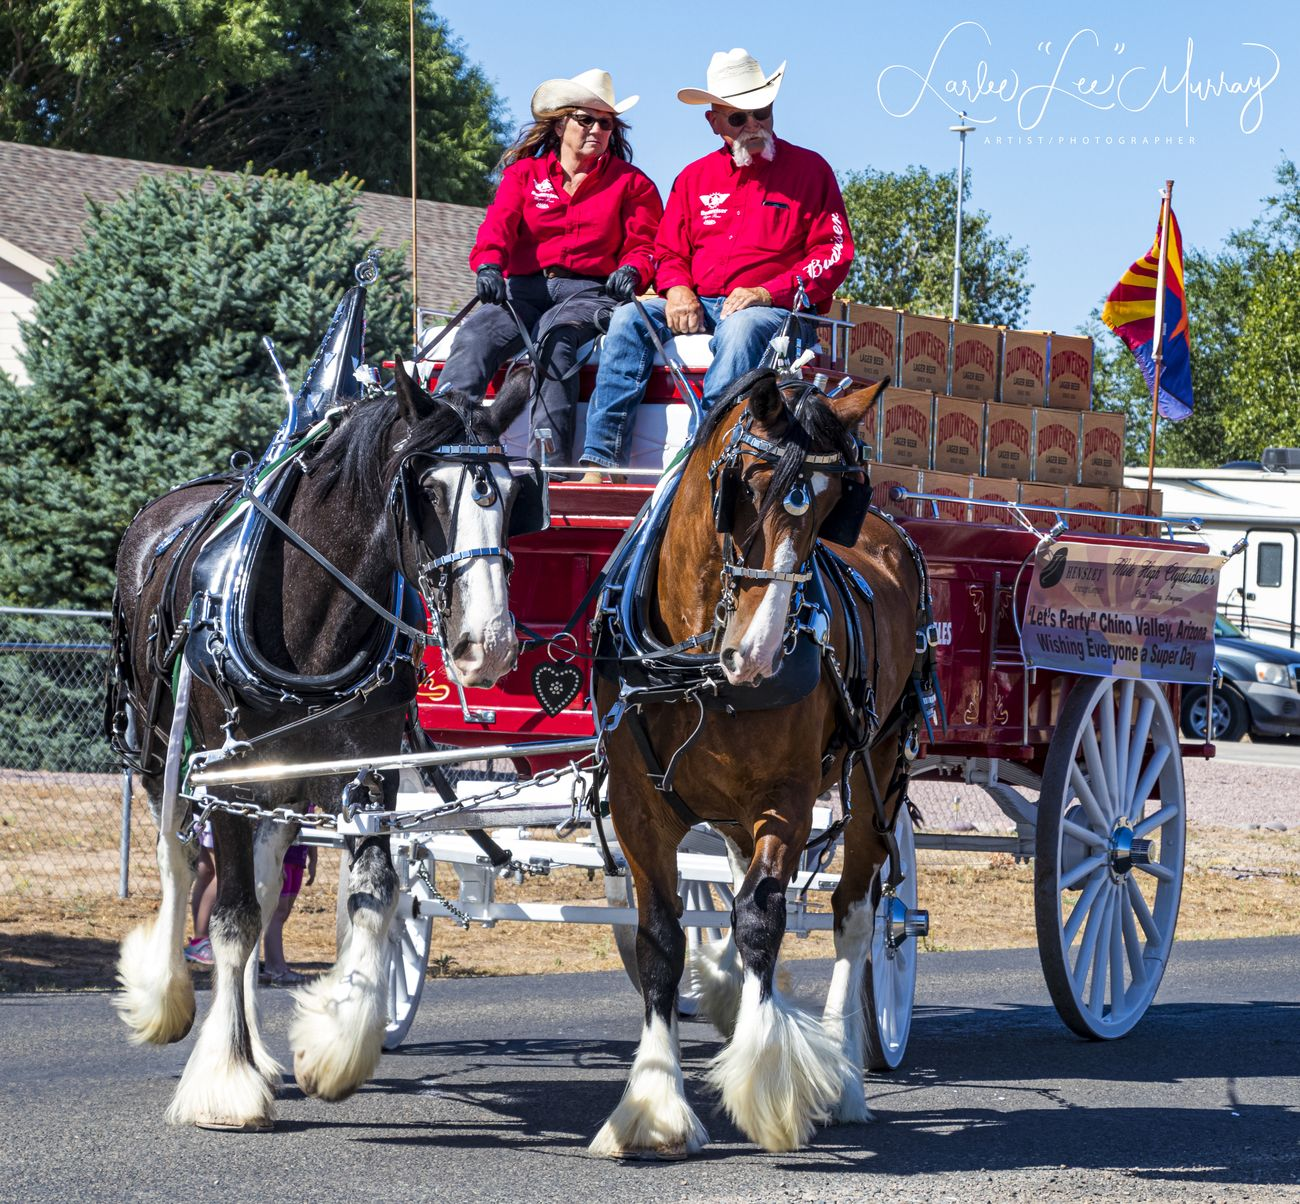 Local Territorial Days parade - my kind of transportation!